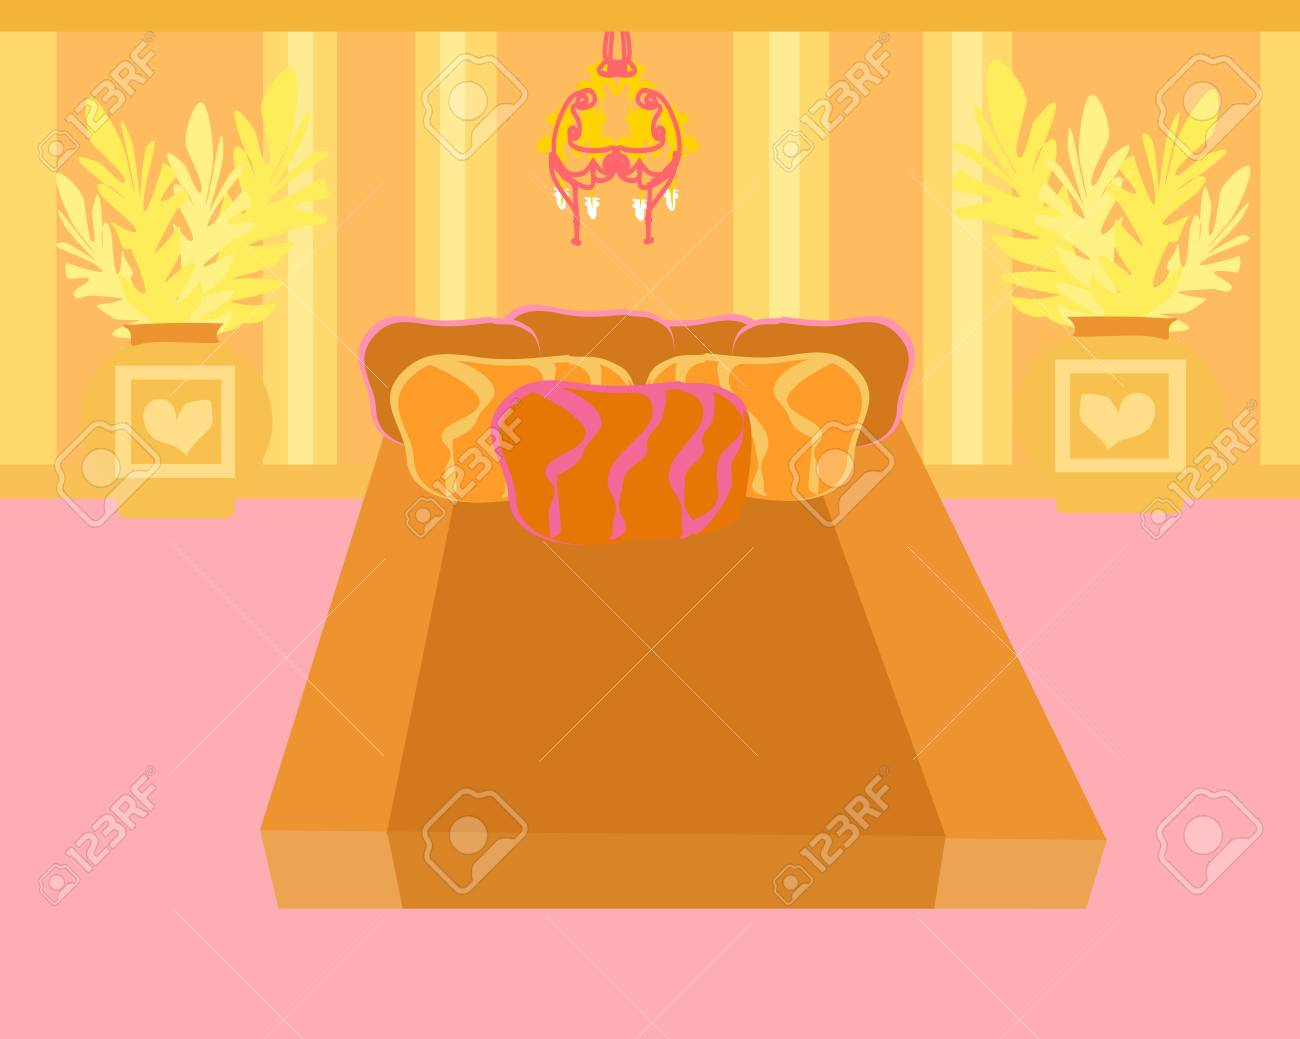 Bedroom interior vector Stock Vector - 12744447